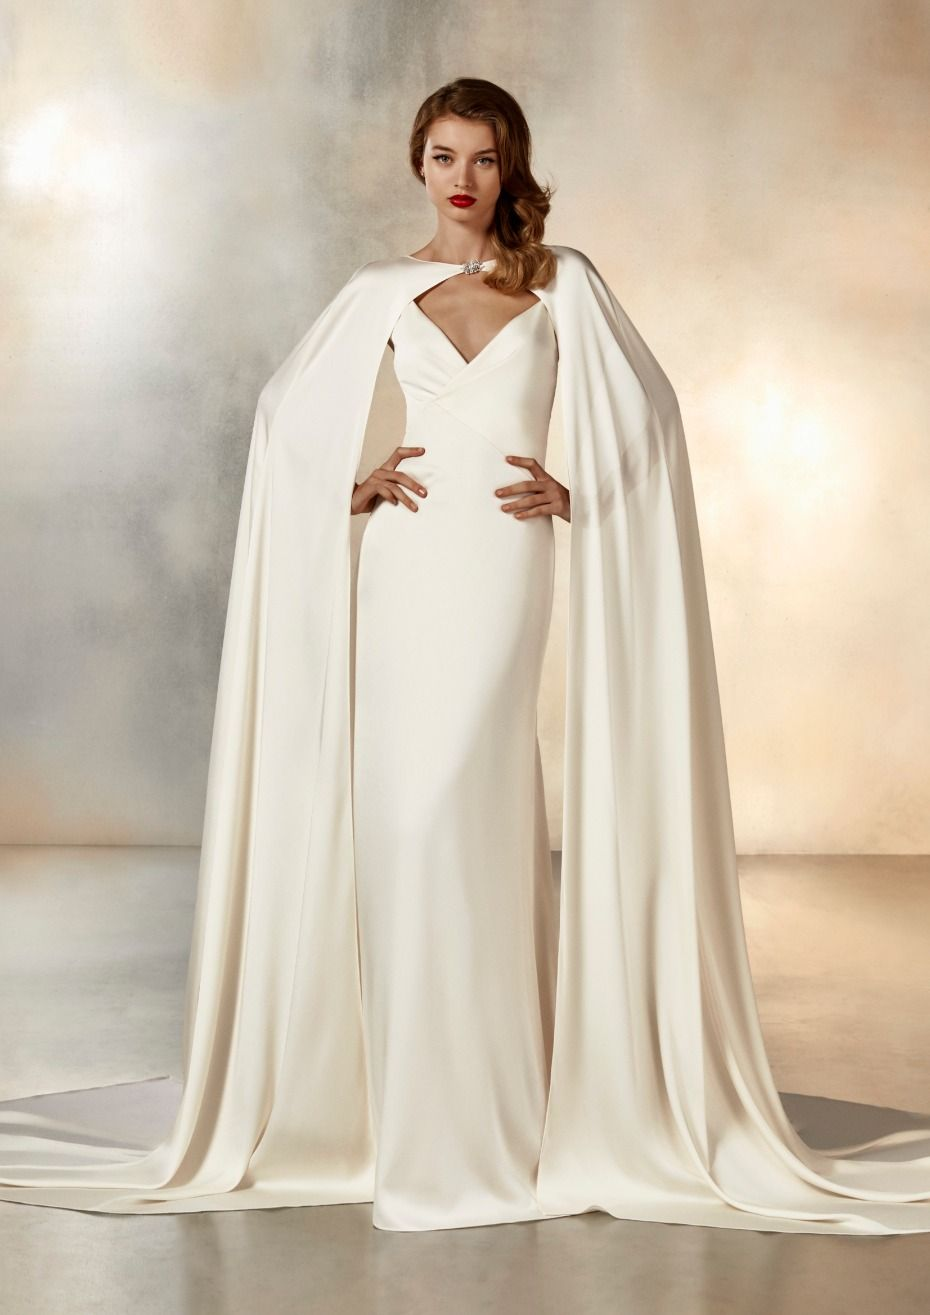 7b80c476e199d Pronovias 2020 Cruise Collection #wedding #bride #bridalgown #weddinggown # pronovias #DancingLights #newfashion #sparkle #bridesparkle #newbride  #2019bride ...